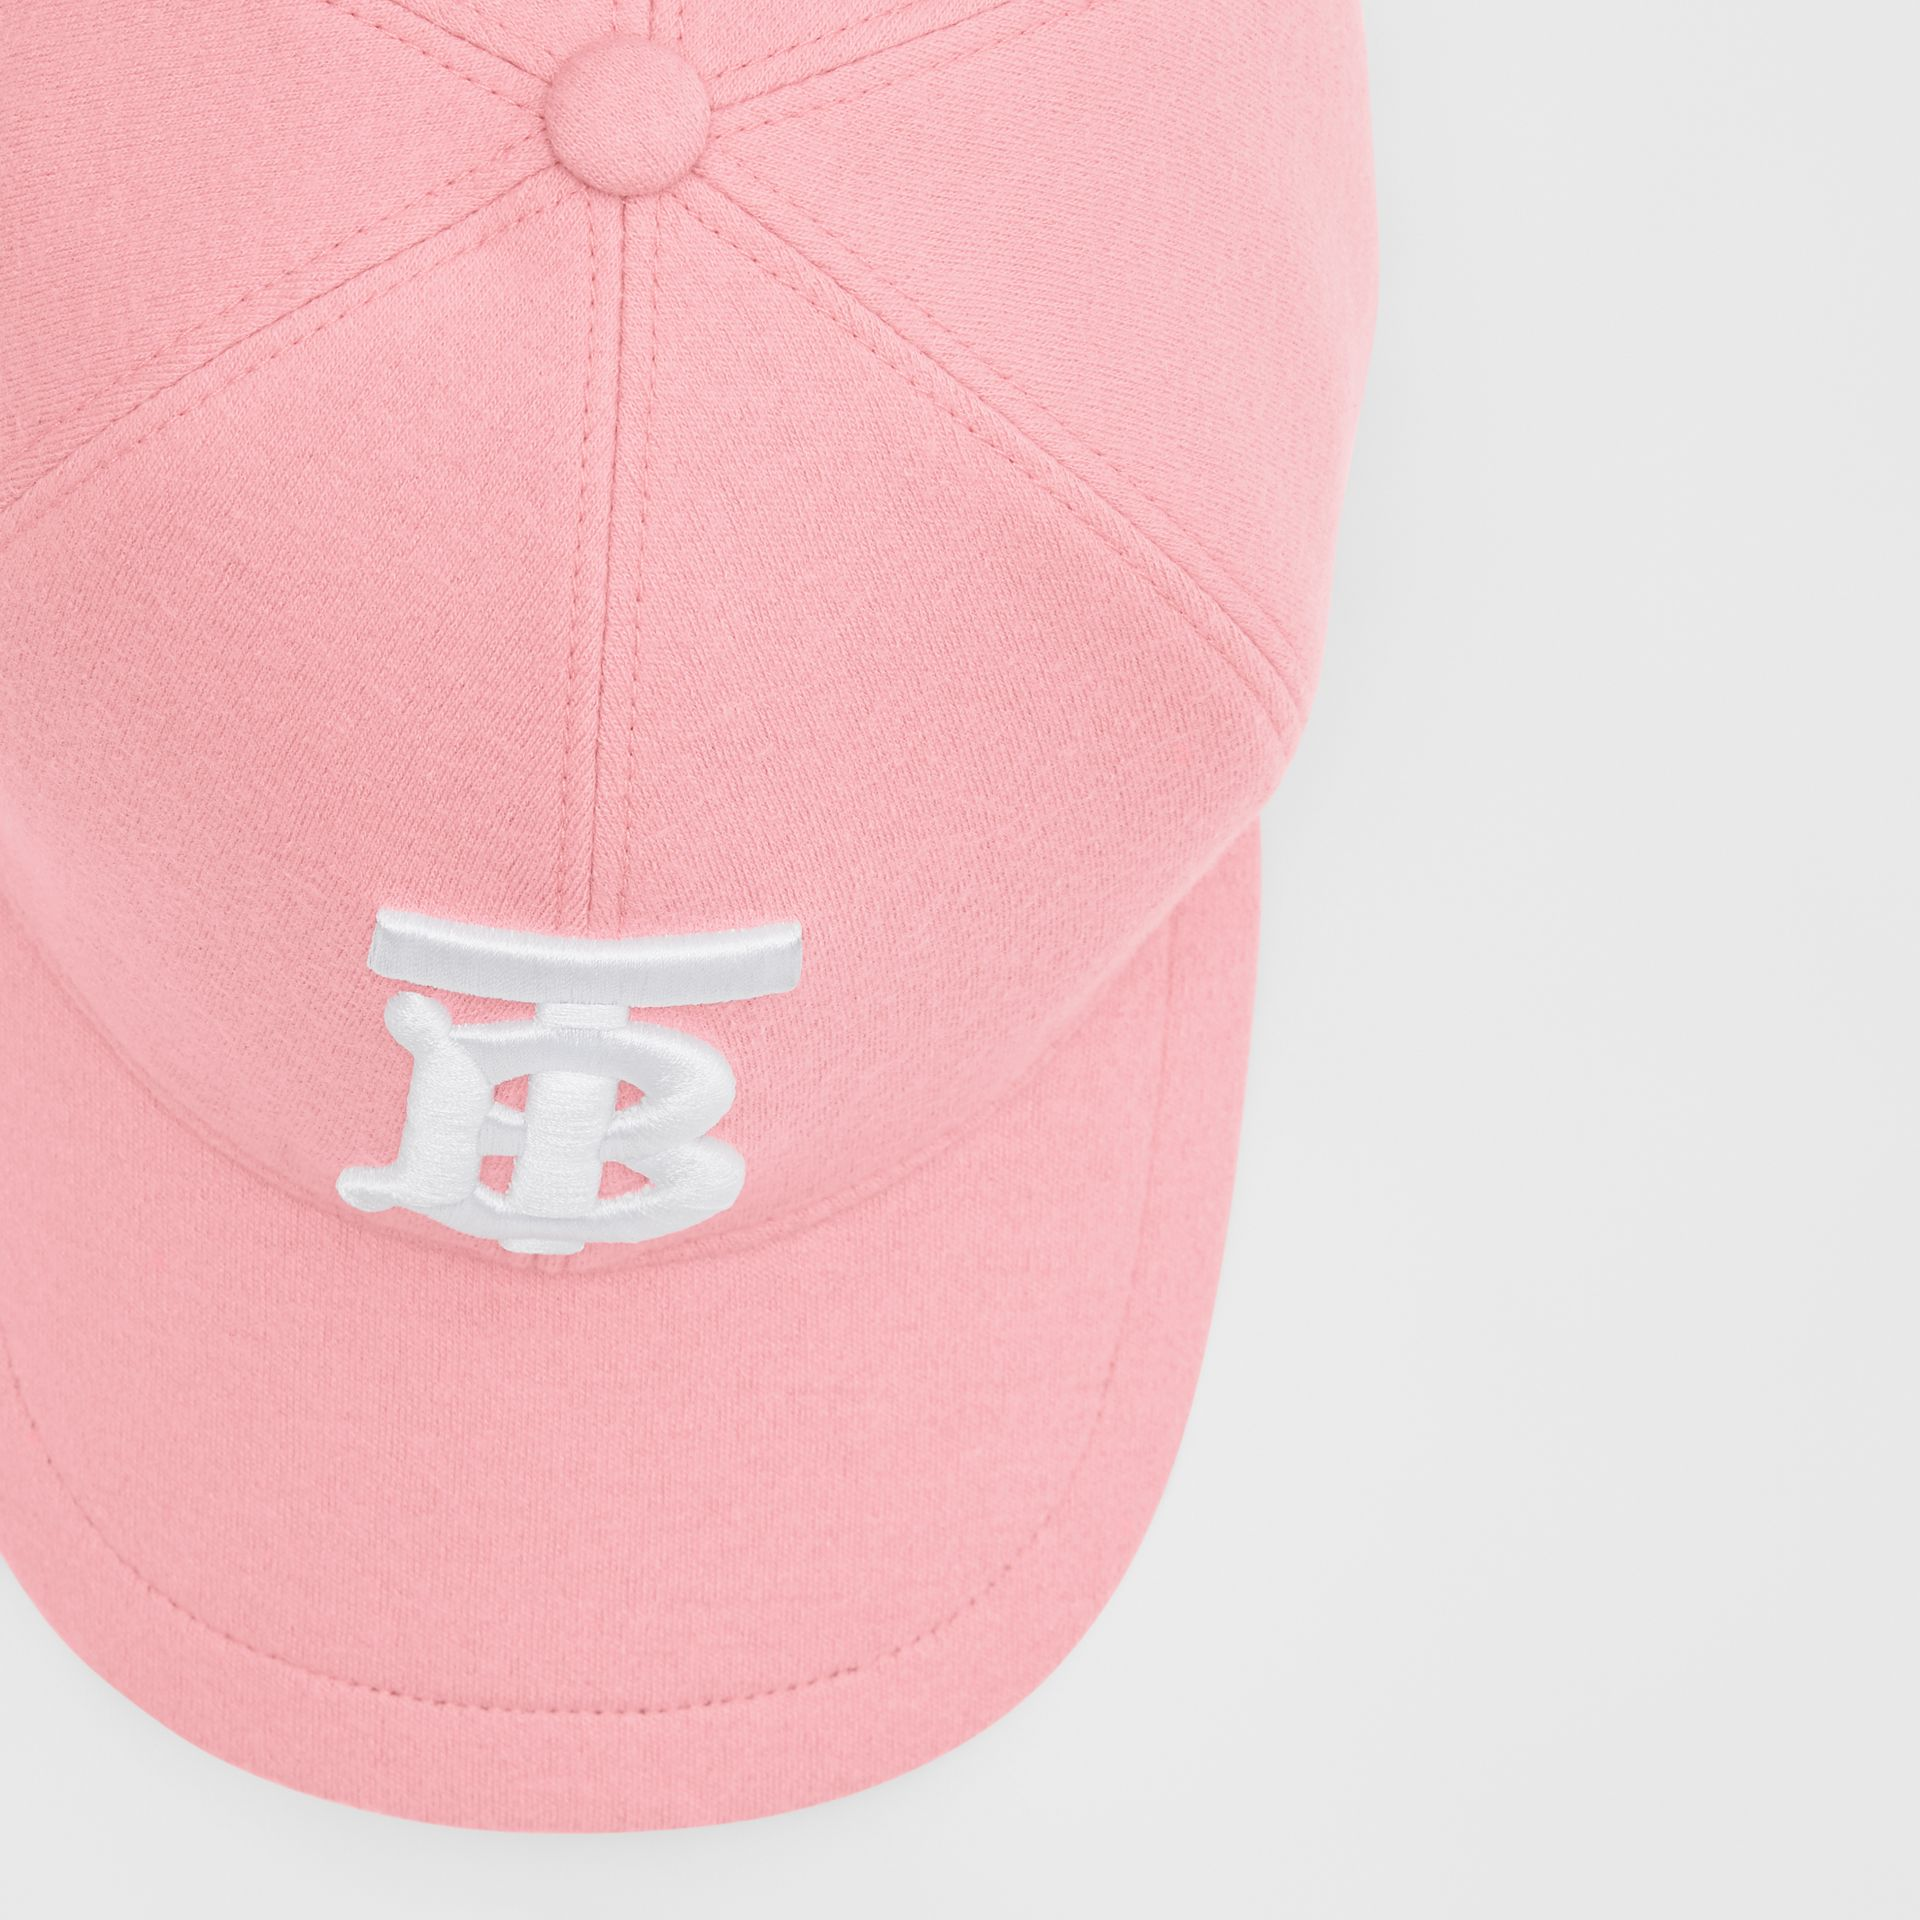 Monogram Motif Jersey Baseball Cap in Pink | Burberry United Kingdom - gallery image 1